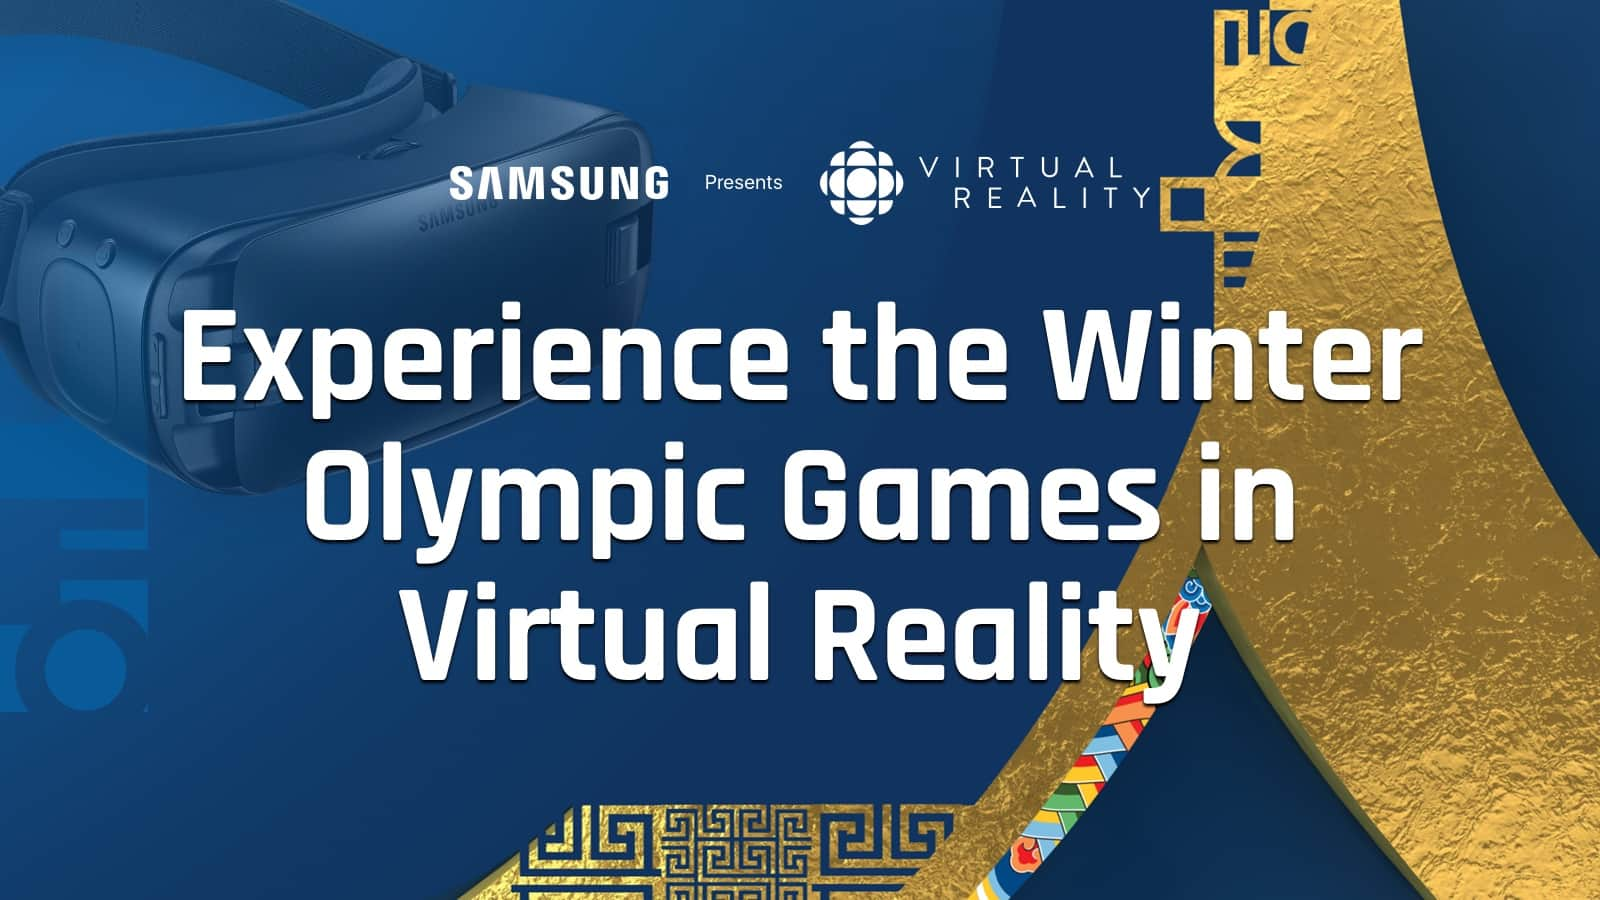 cbc olympic games virtual reality